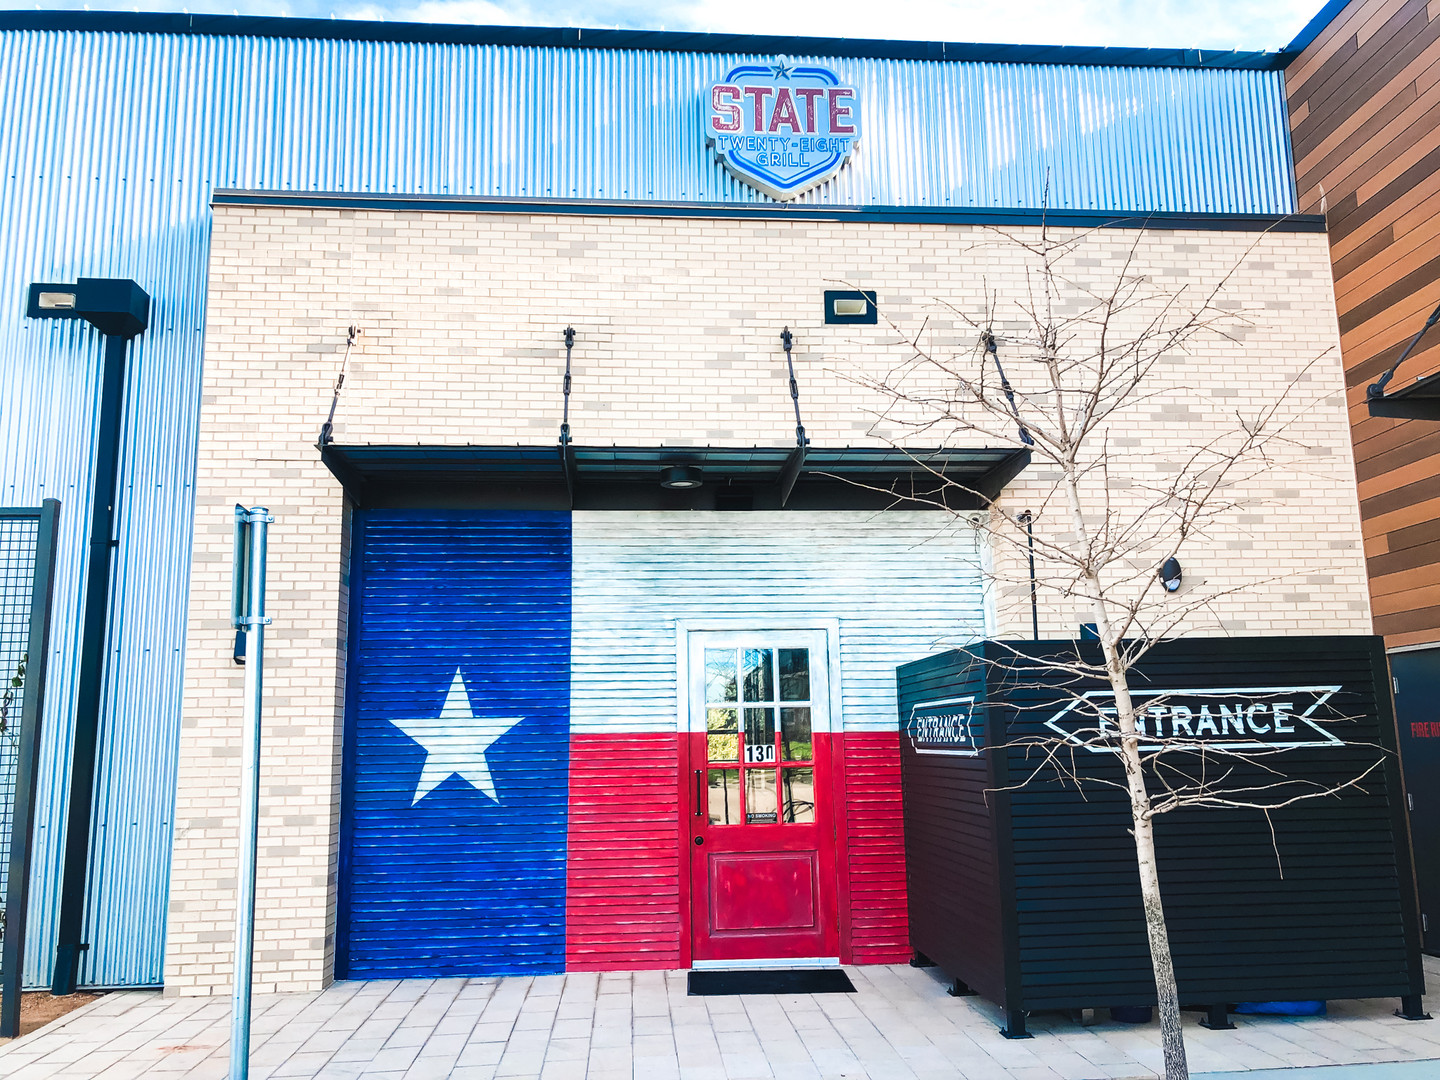 State 28 Grill Exterior.jpg